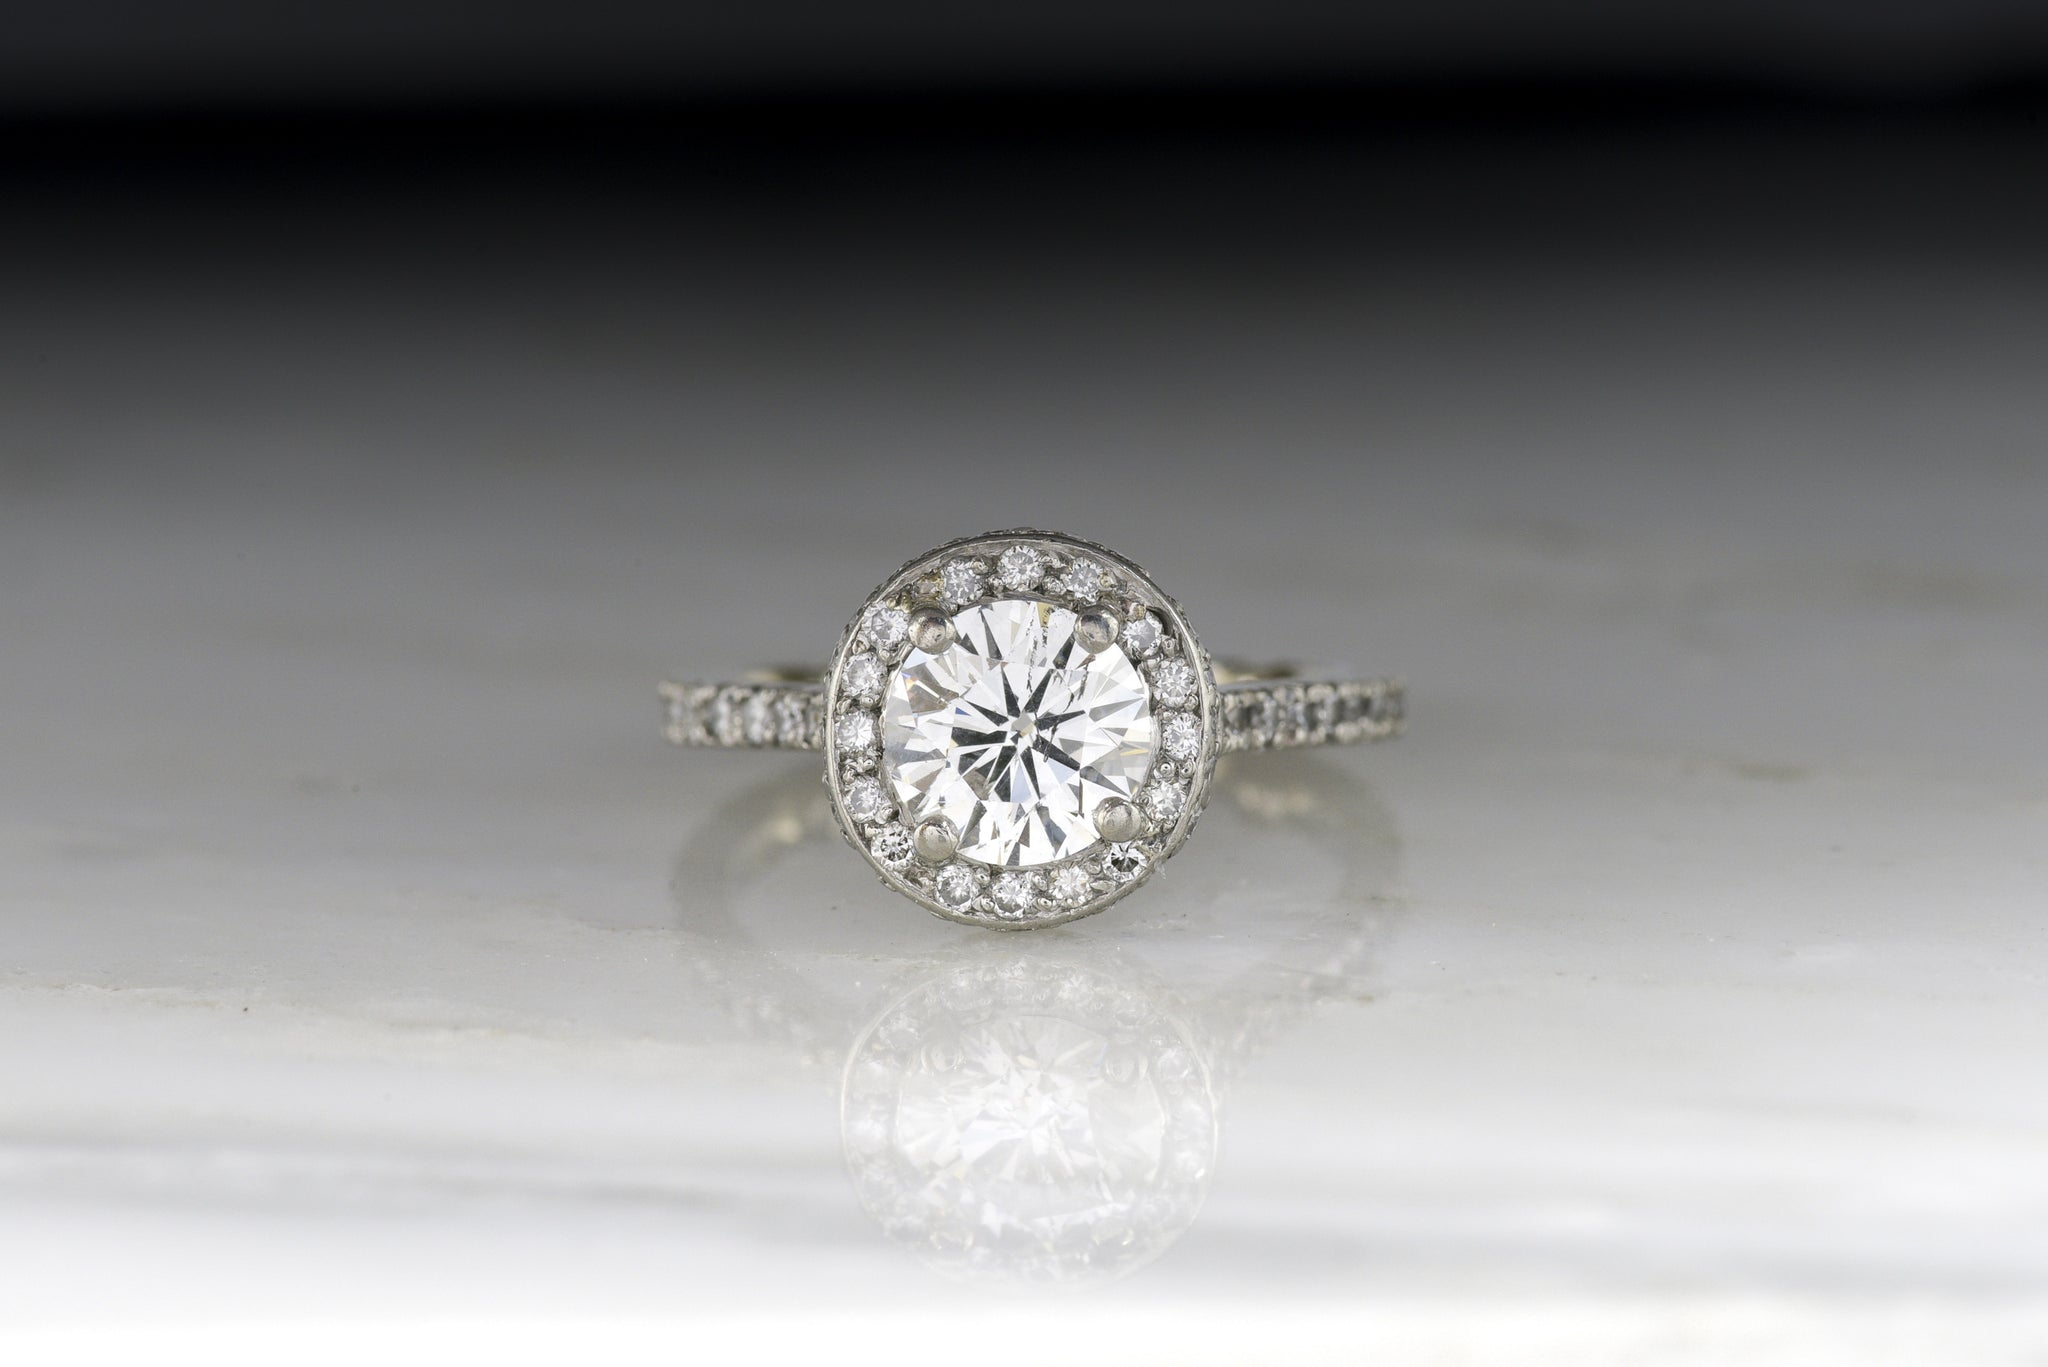 gold white both tolkowsky solitaire the ring through diamond us kay pin shown available in with engagement enhancer rings jewelers